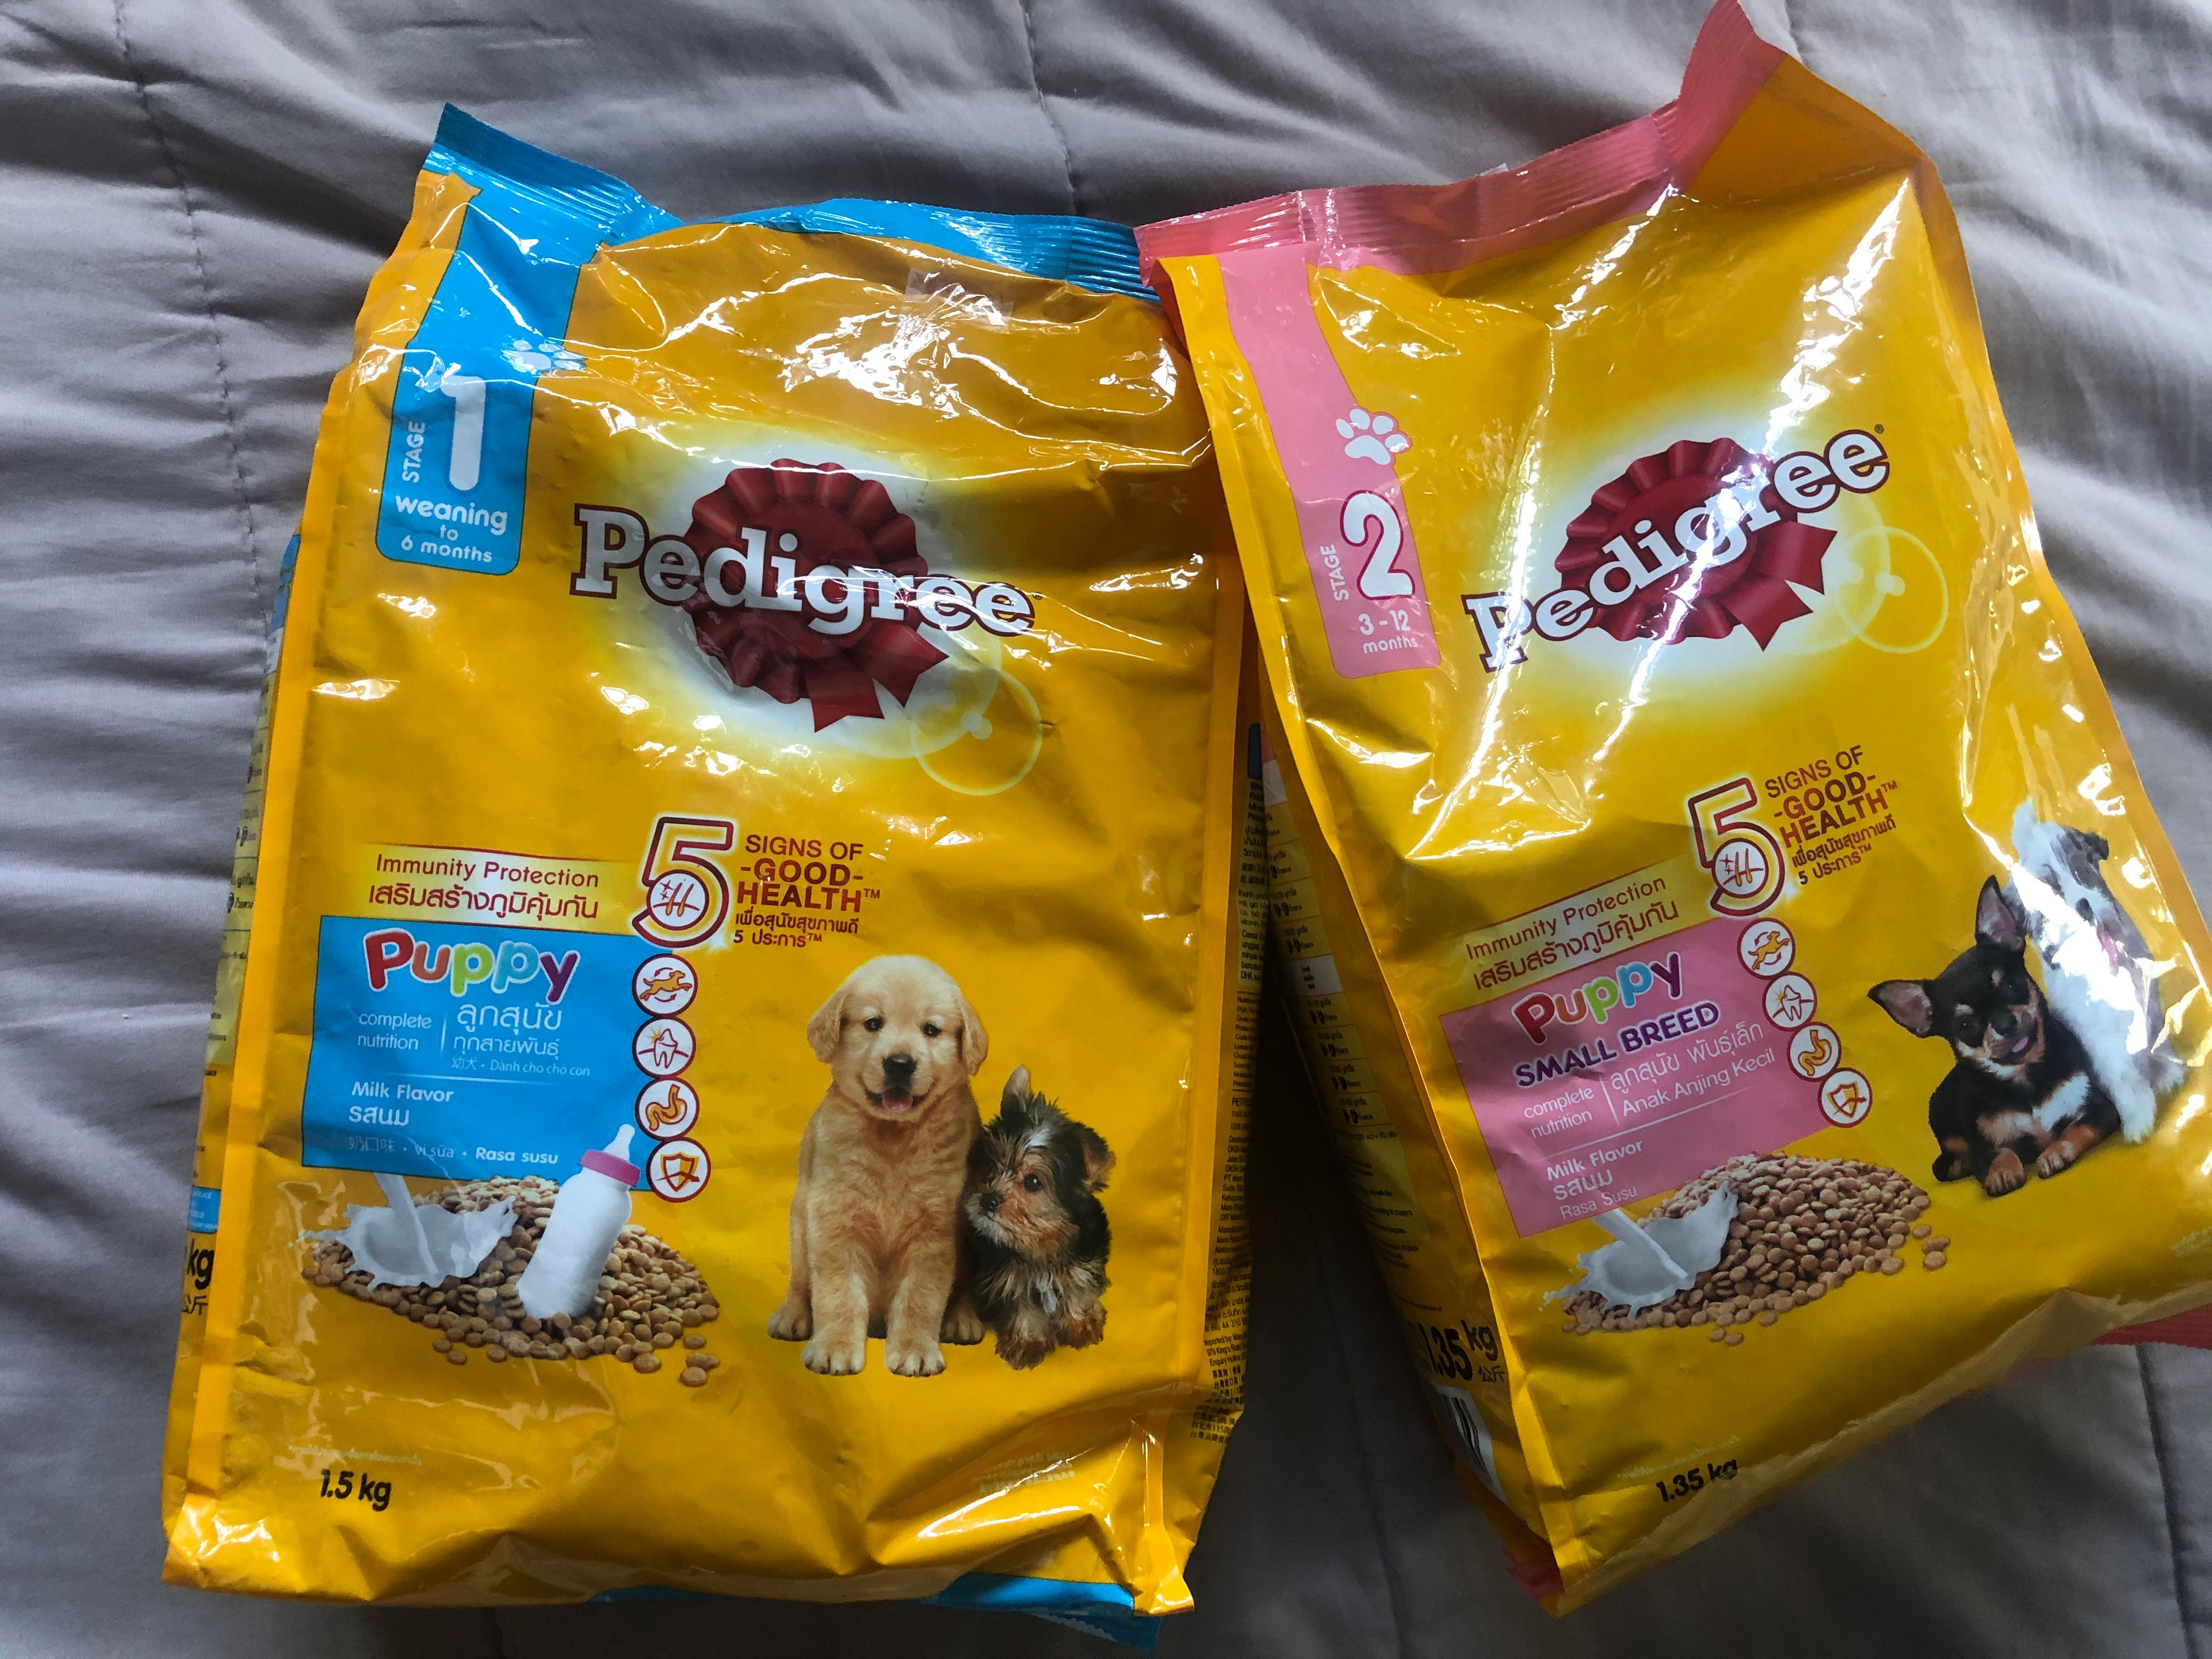 Pedigree Dog Food for Puppy, Pets